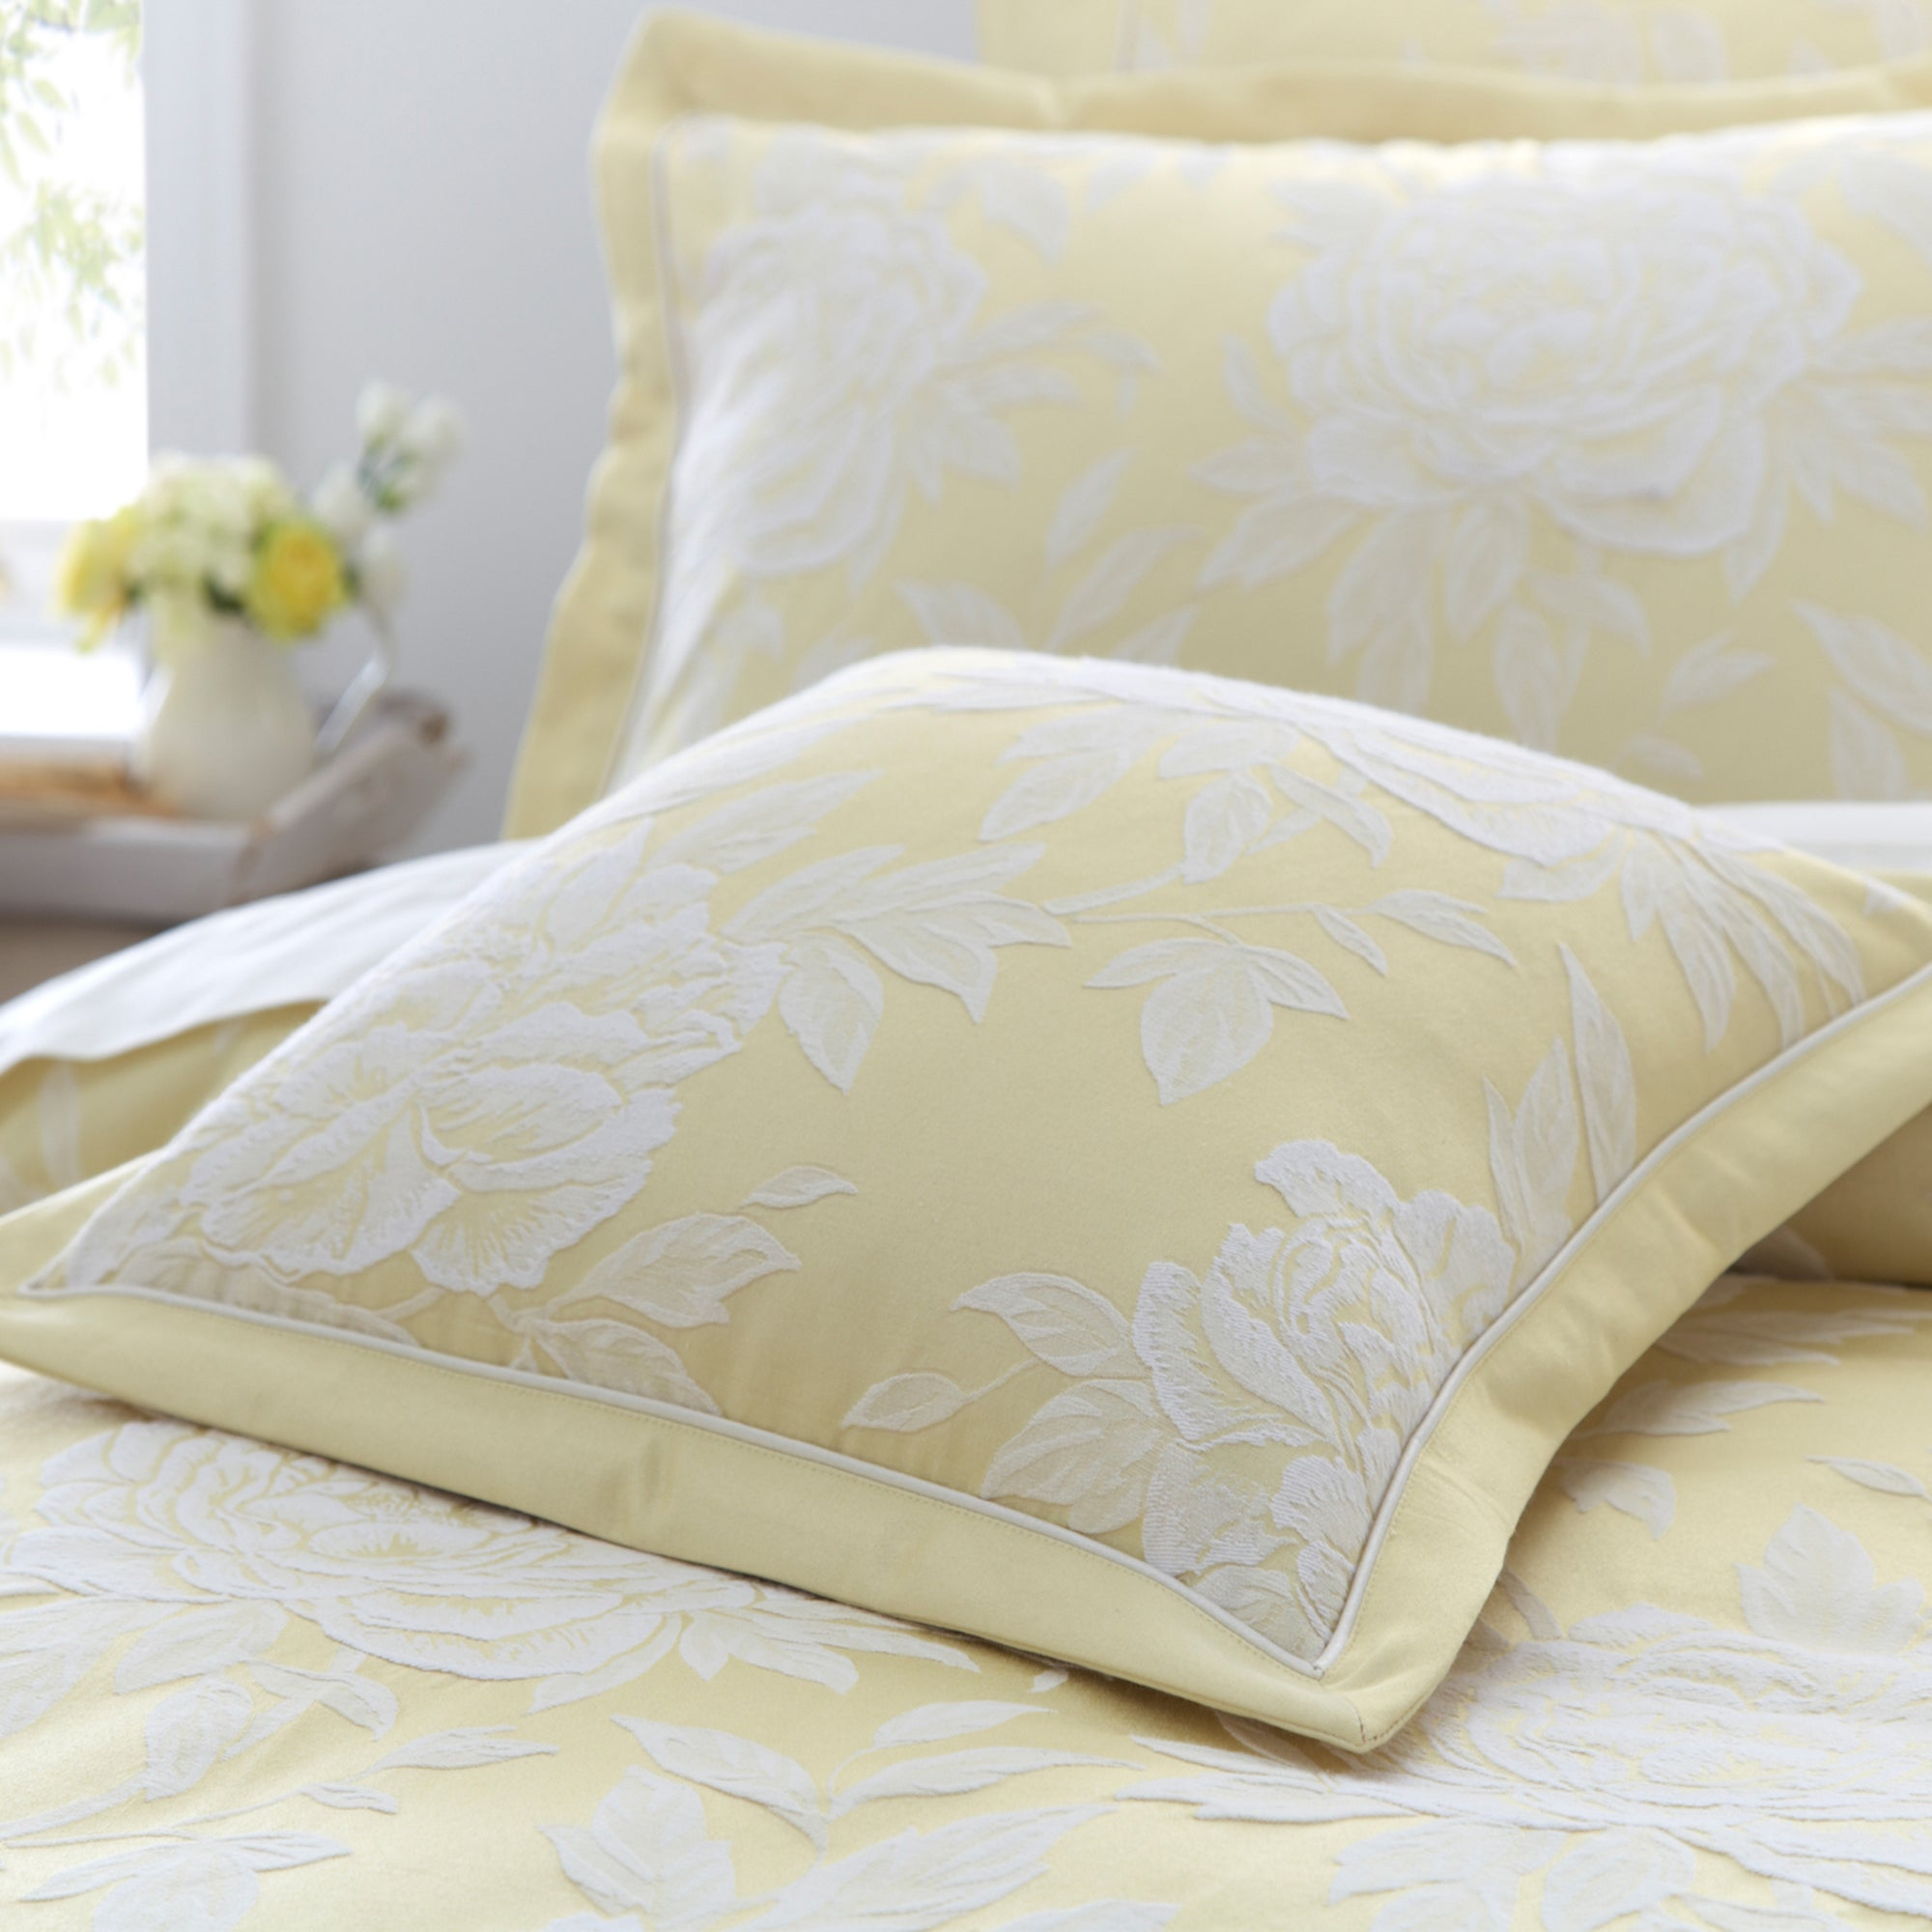 Dorma Lemon Chatsworth Collection Cushion